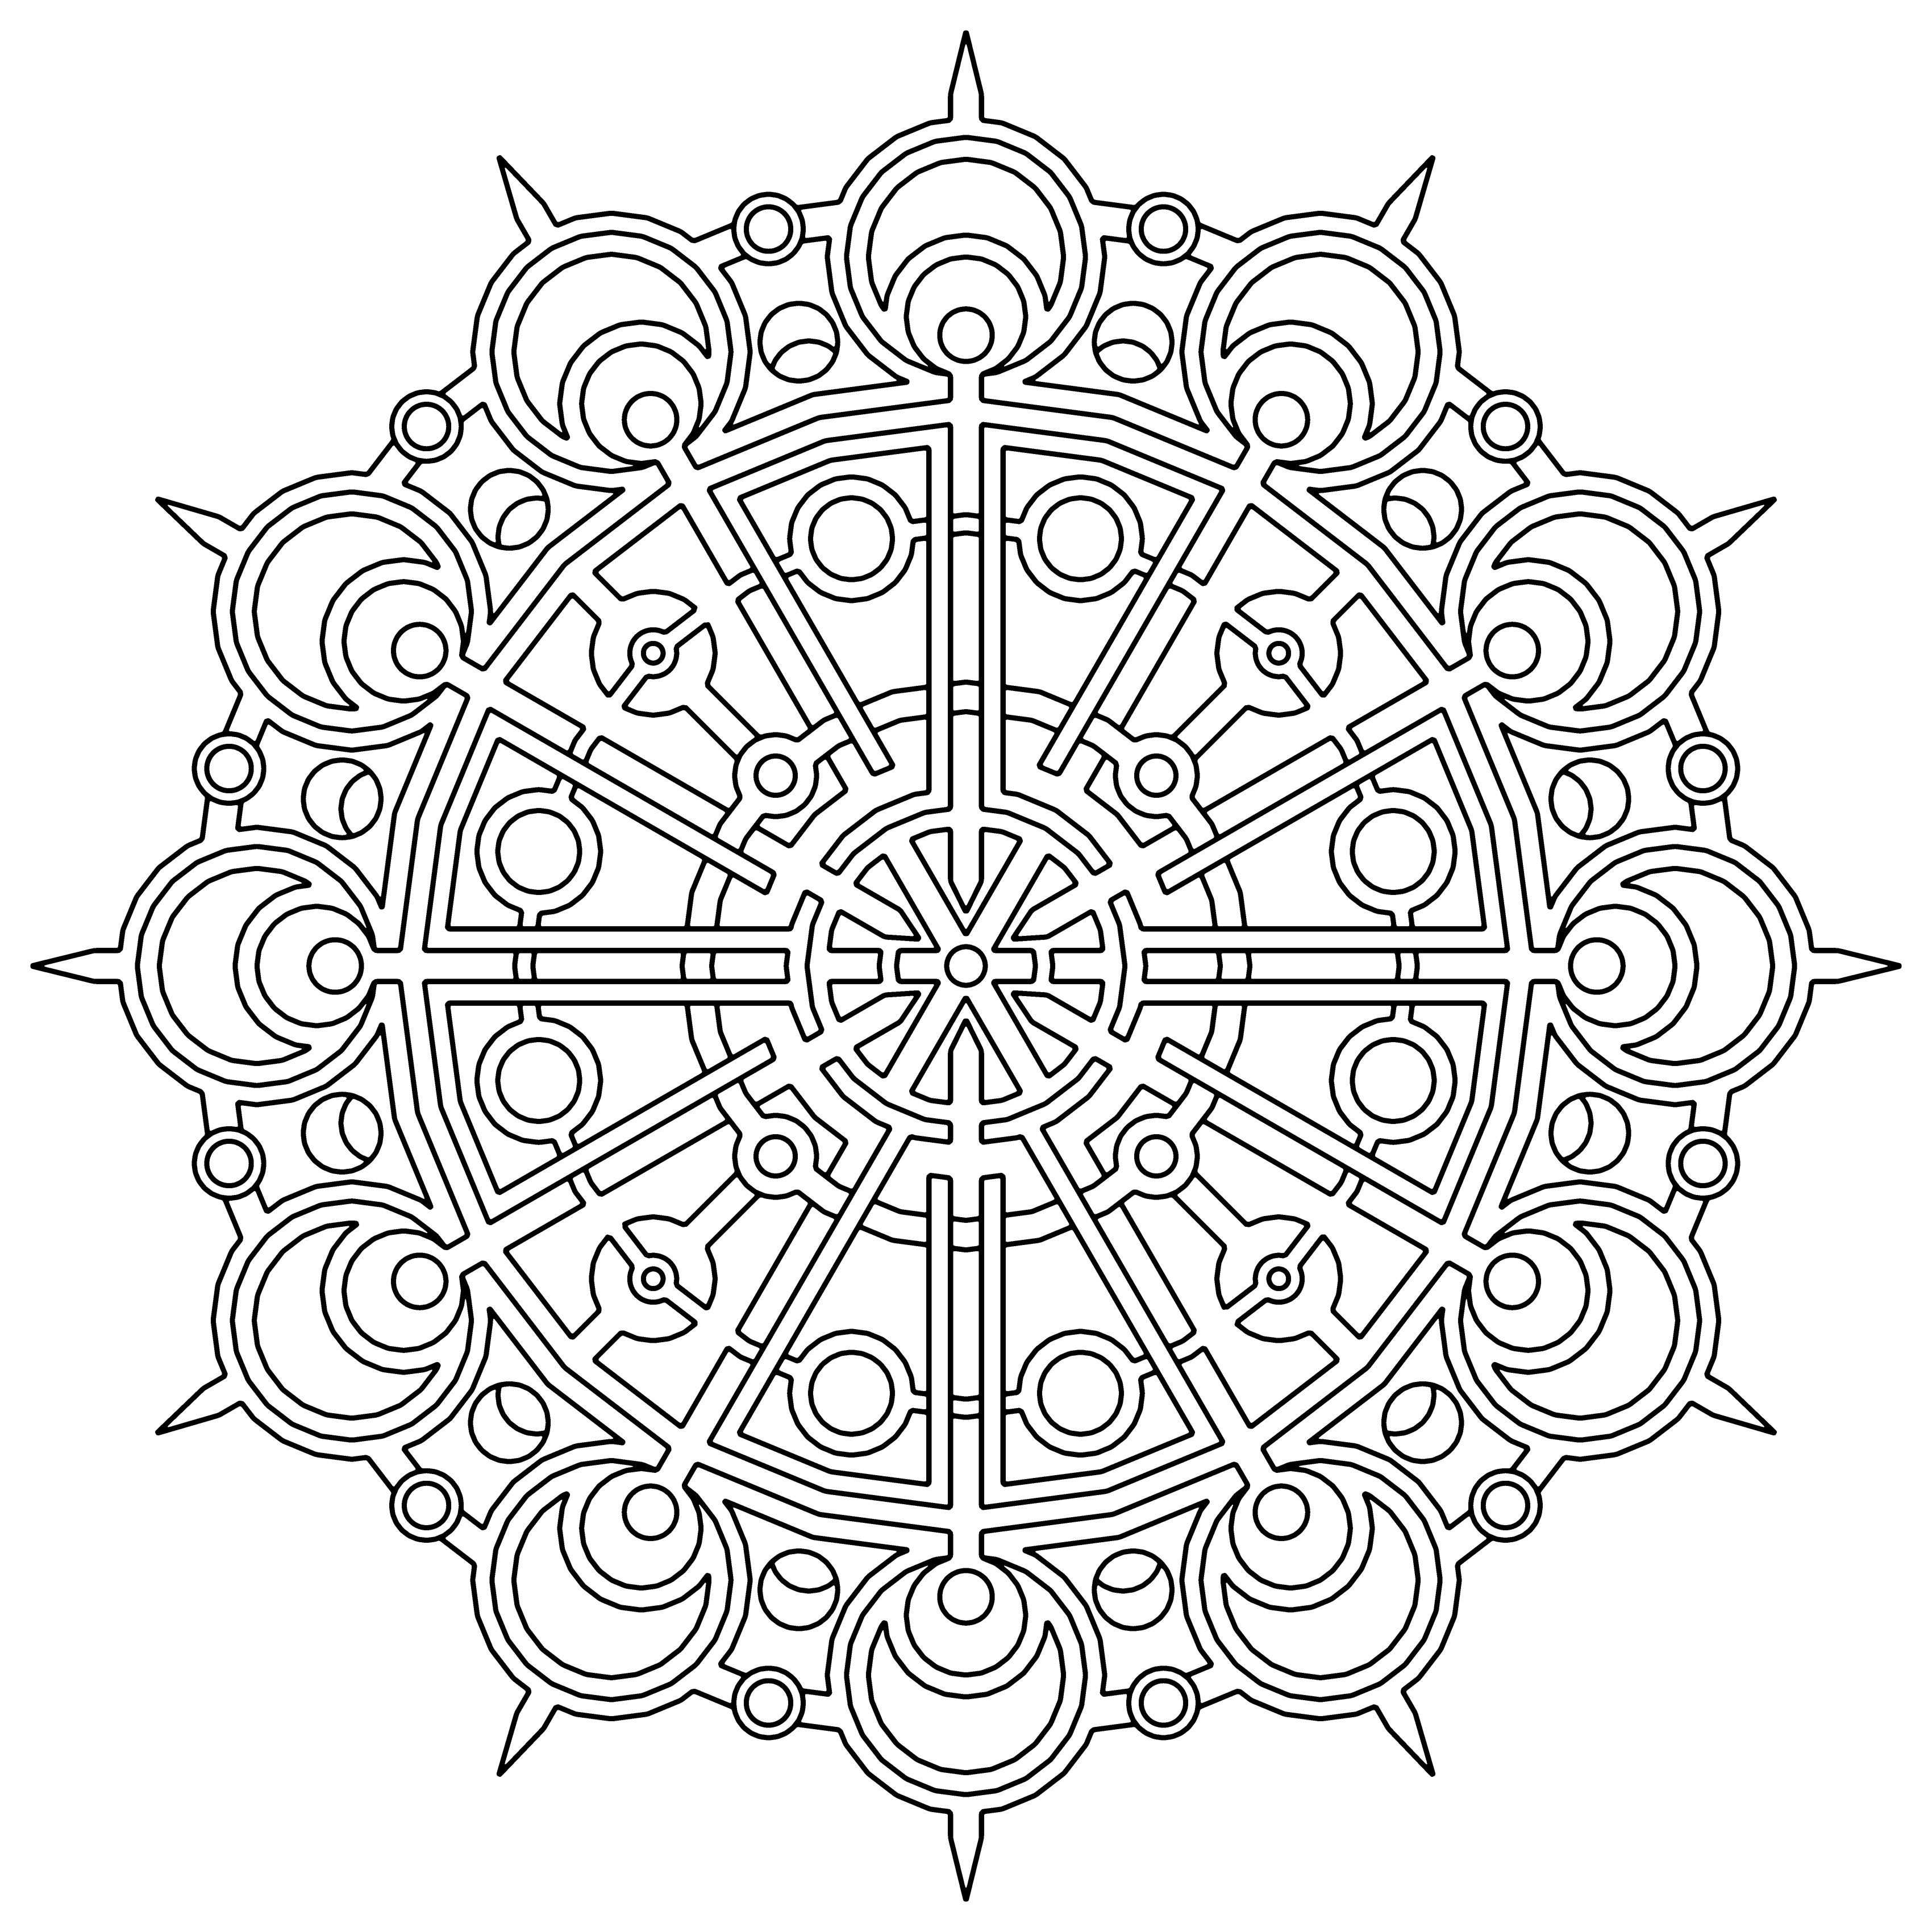 patterns to color in fish pattern coloring page free printable coloring pages color patterns to in